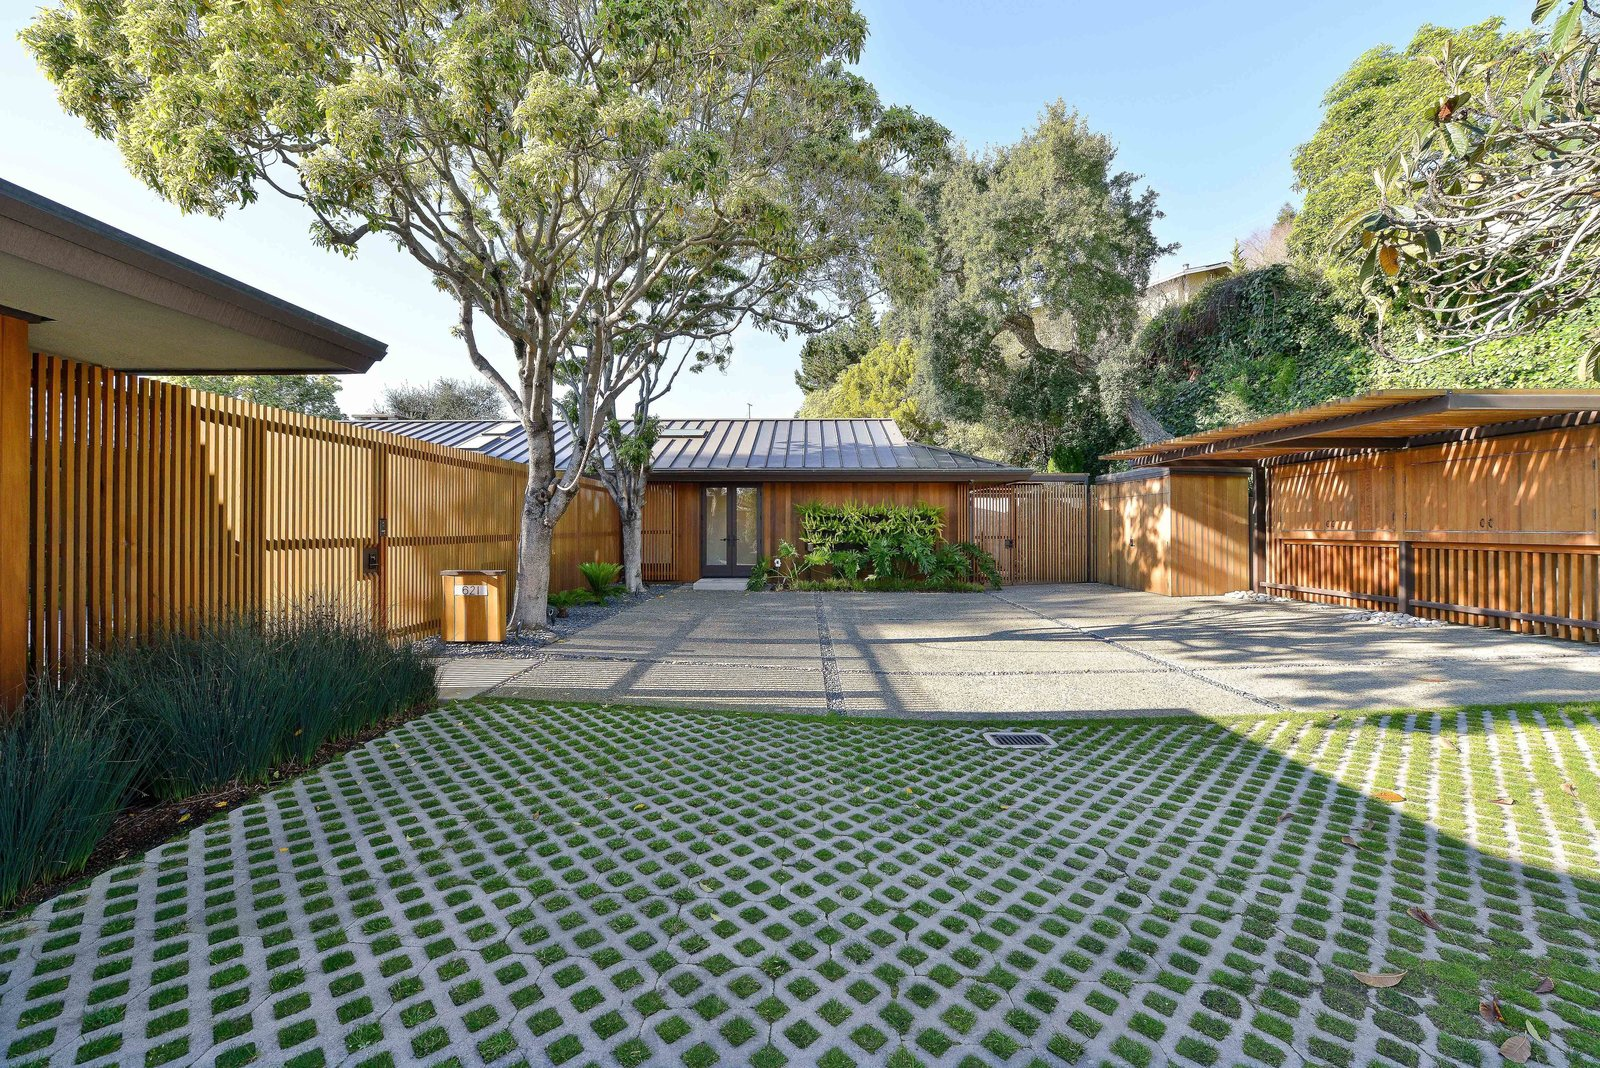 Photo 1 of 6 in A Quintessential Midcentury Home Goes LEED Platinum